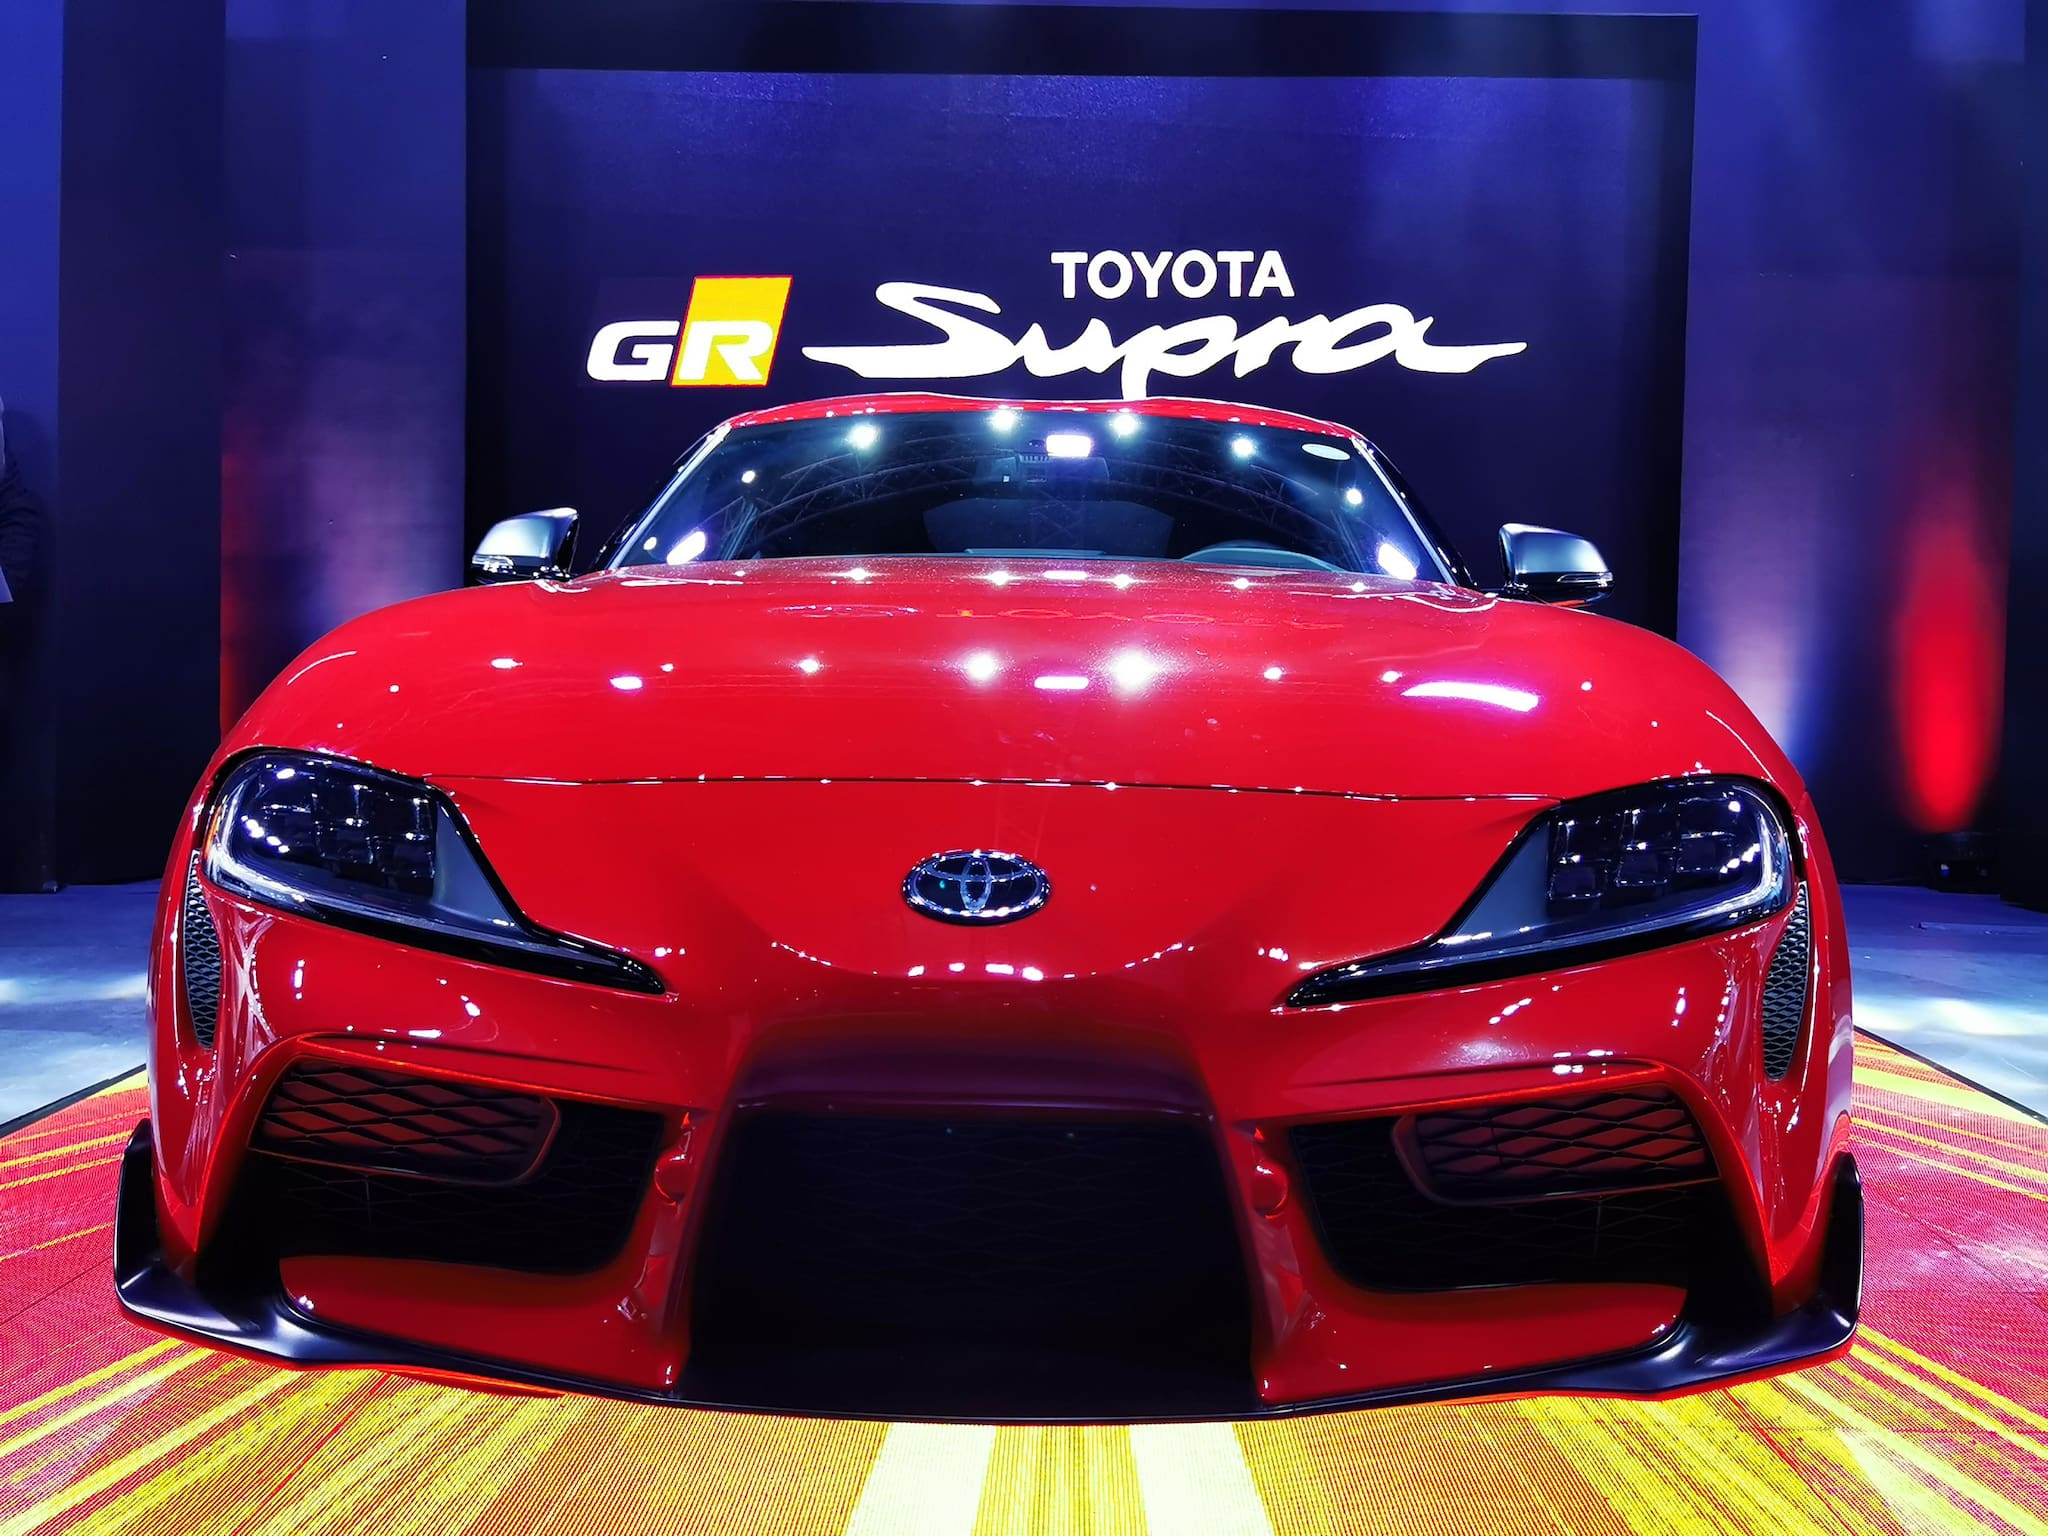 Toyota PH Launches Toyota GR Supra, to Have 170-Unit Supply Cap for 2019